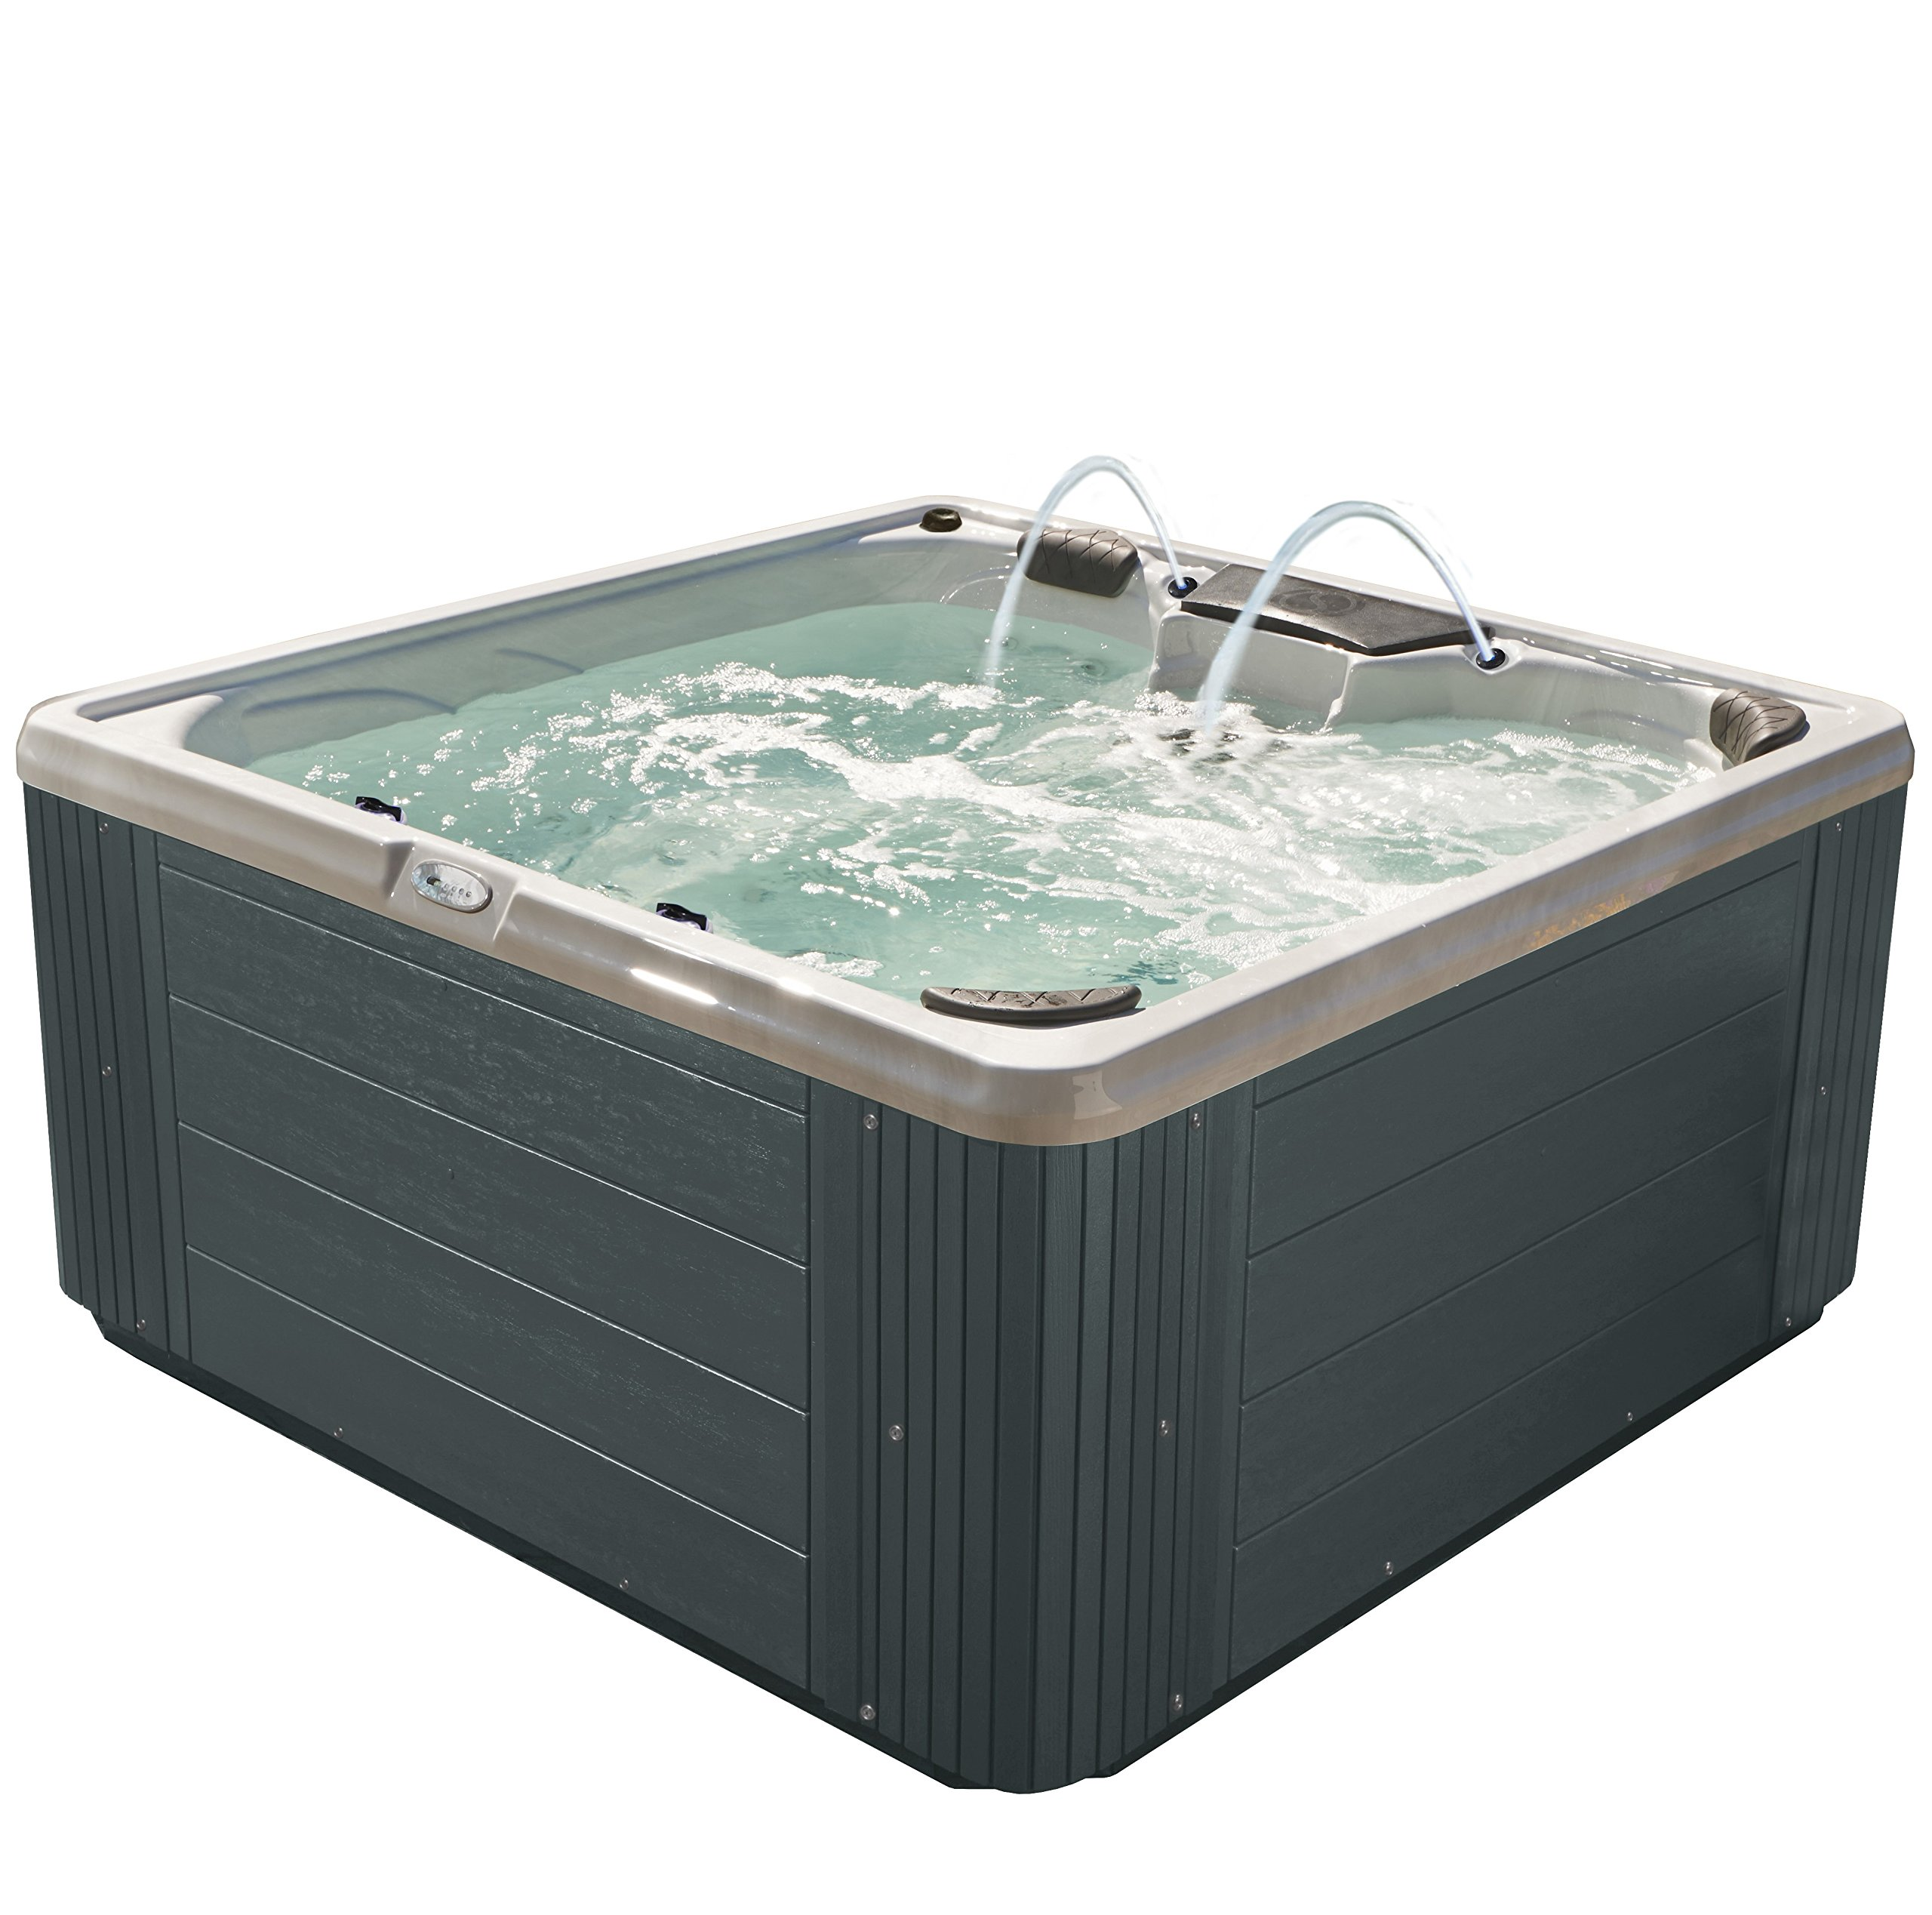 Essential Hot Tubs - Adelaide 30 Jet Confer Grey/Sterling Silver by Essential Hot Tubs (Image #1)